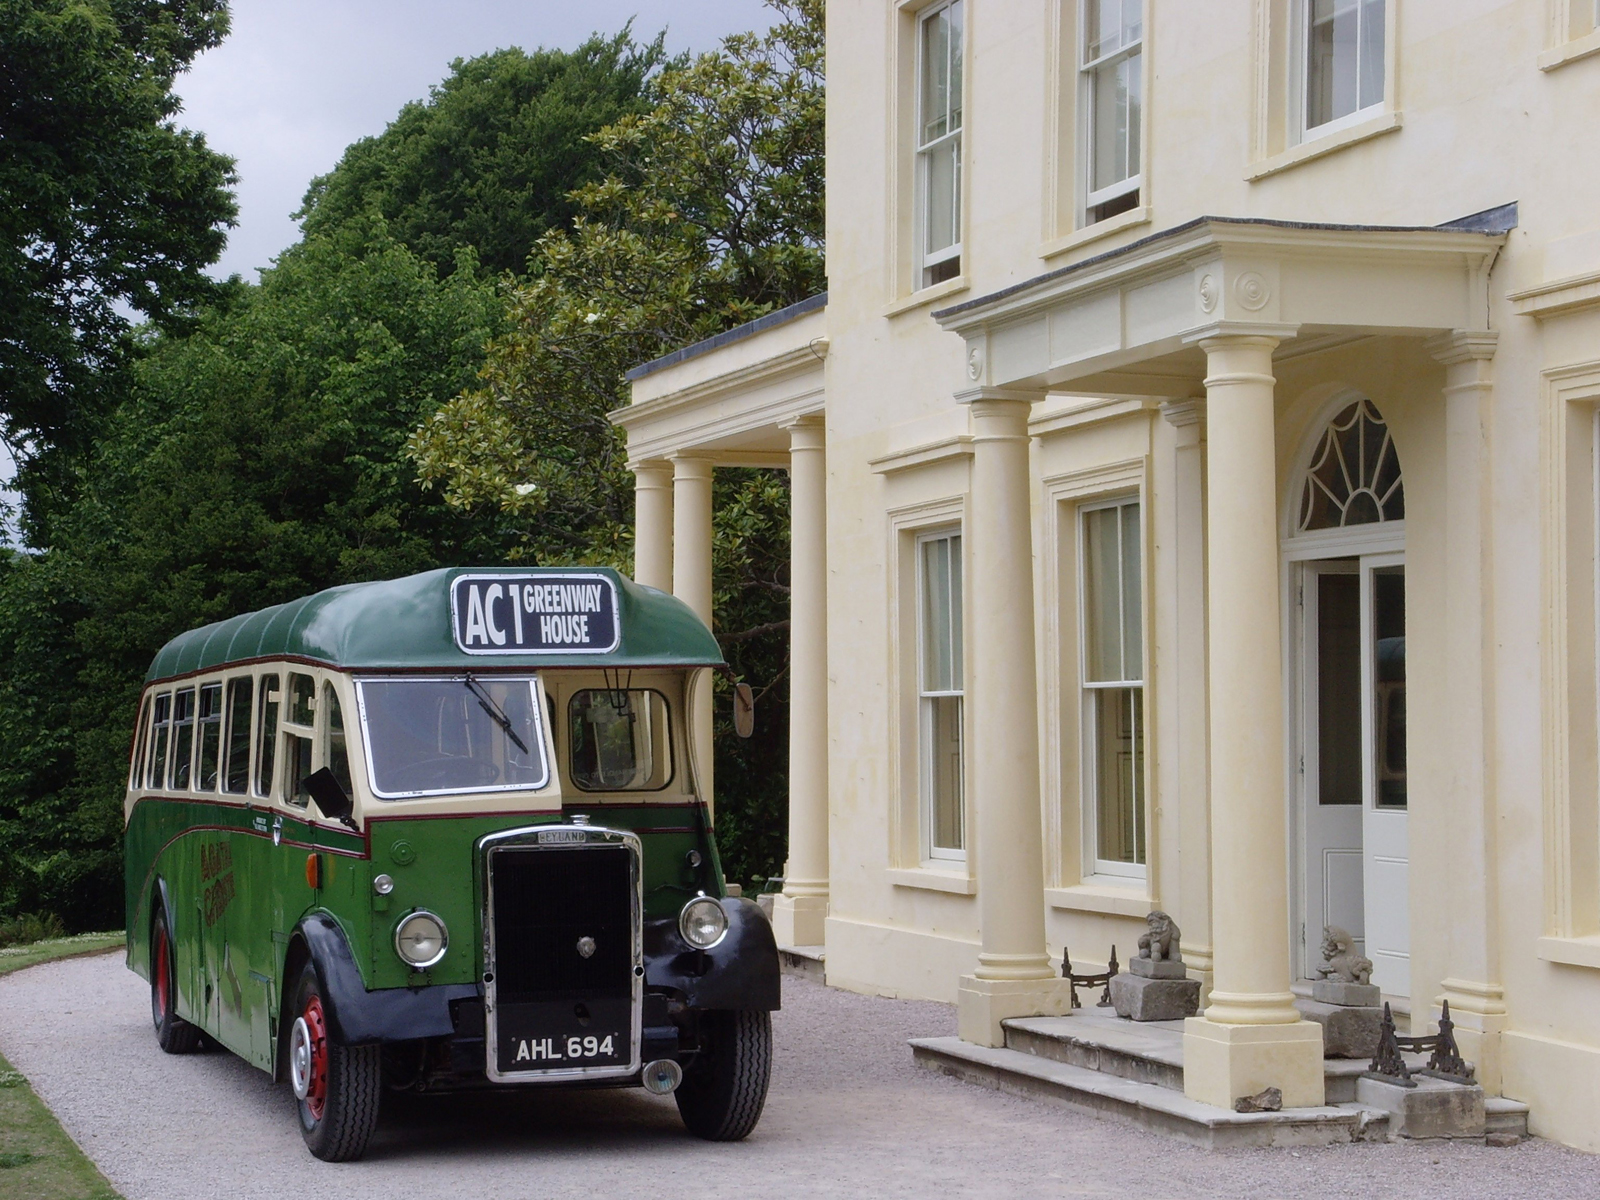 Greenway House, holiday home of Agatha Christie overlooking the River Dart